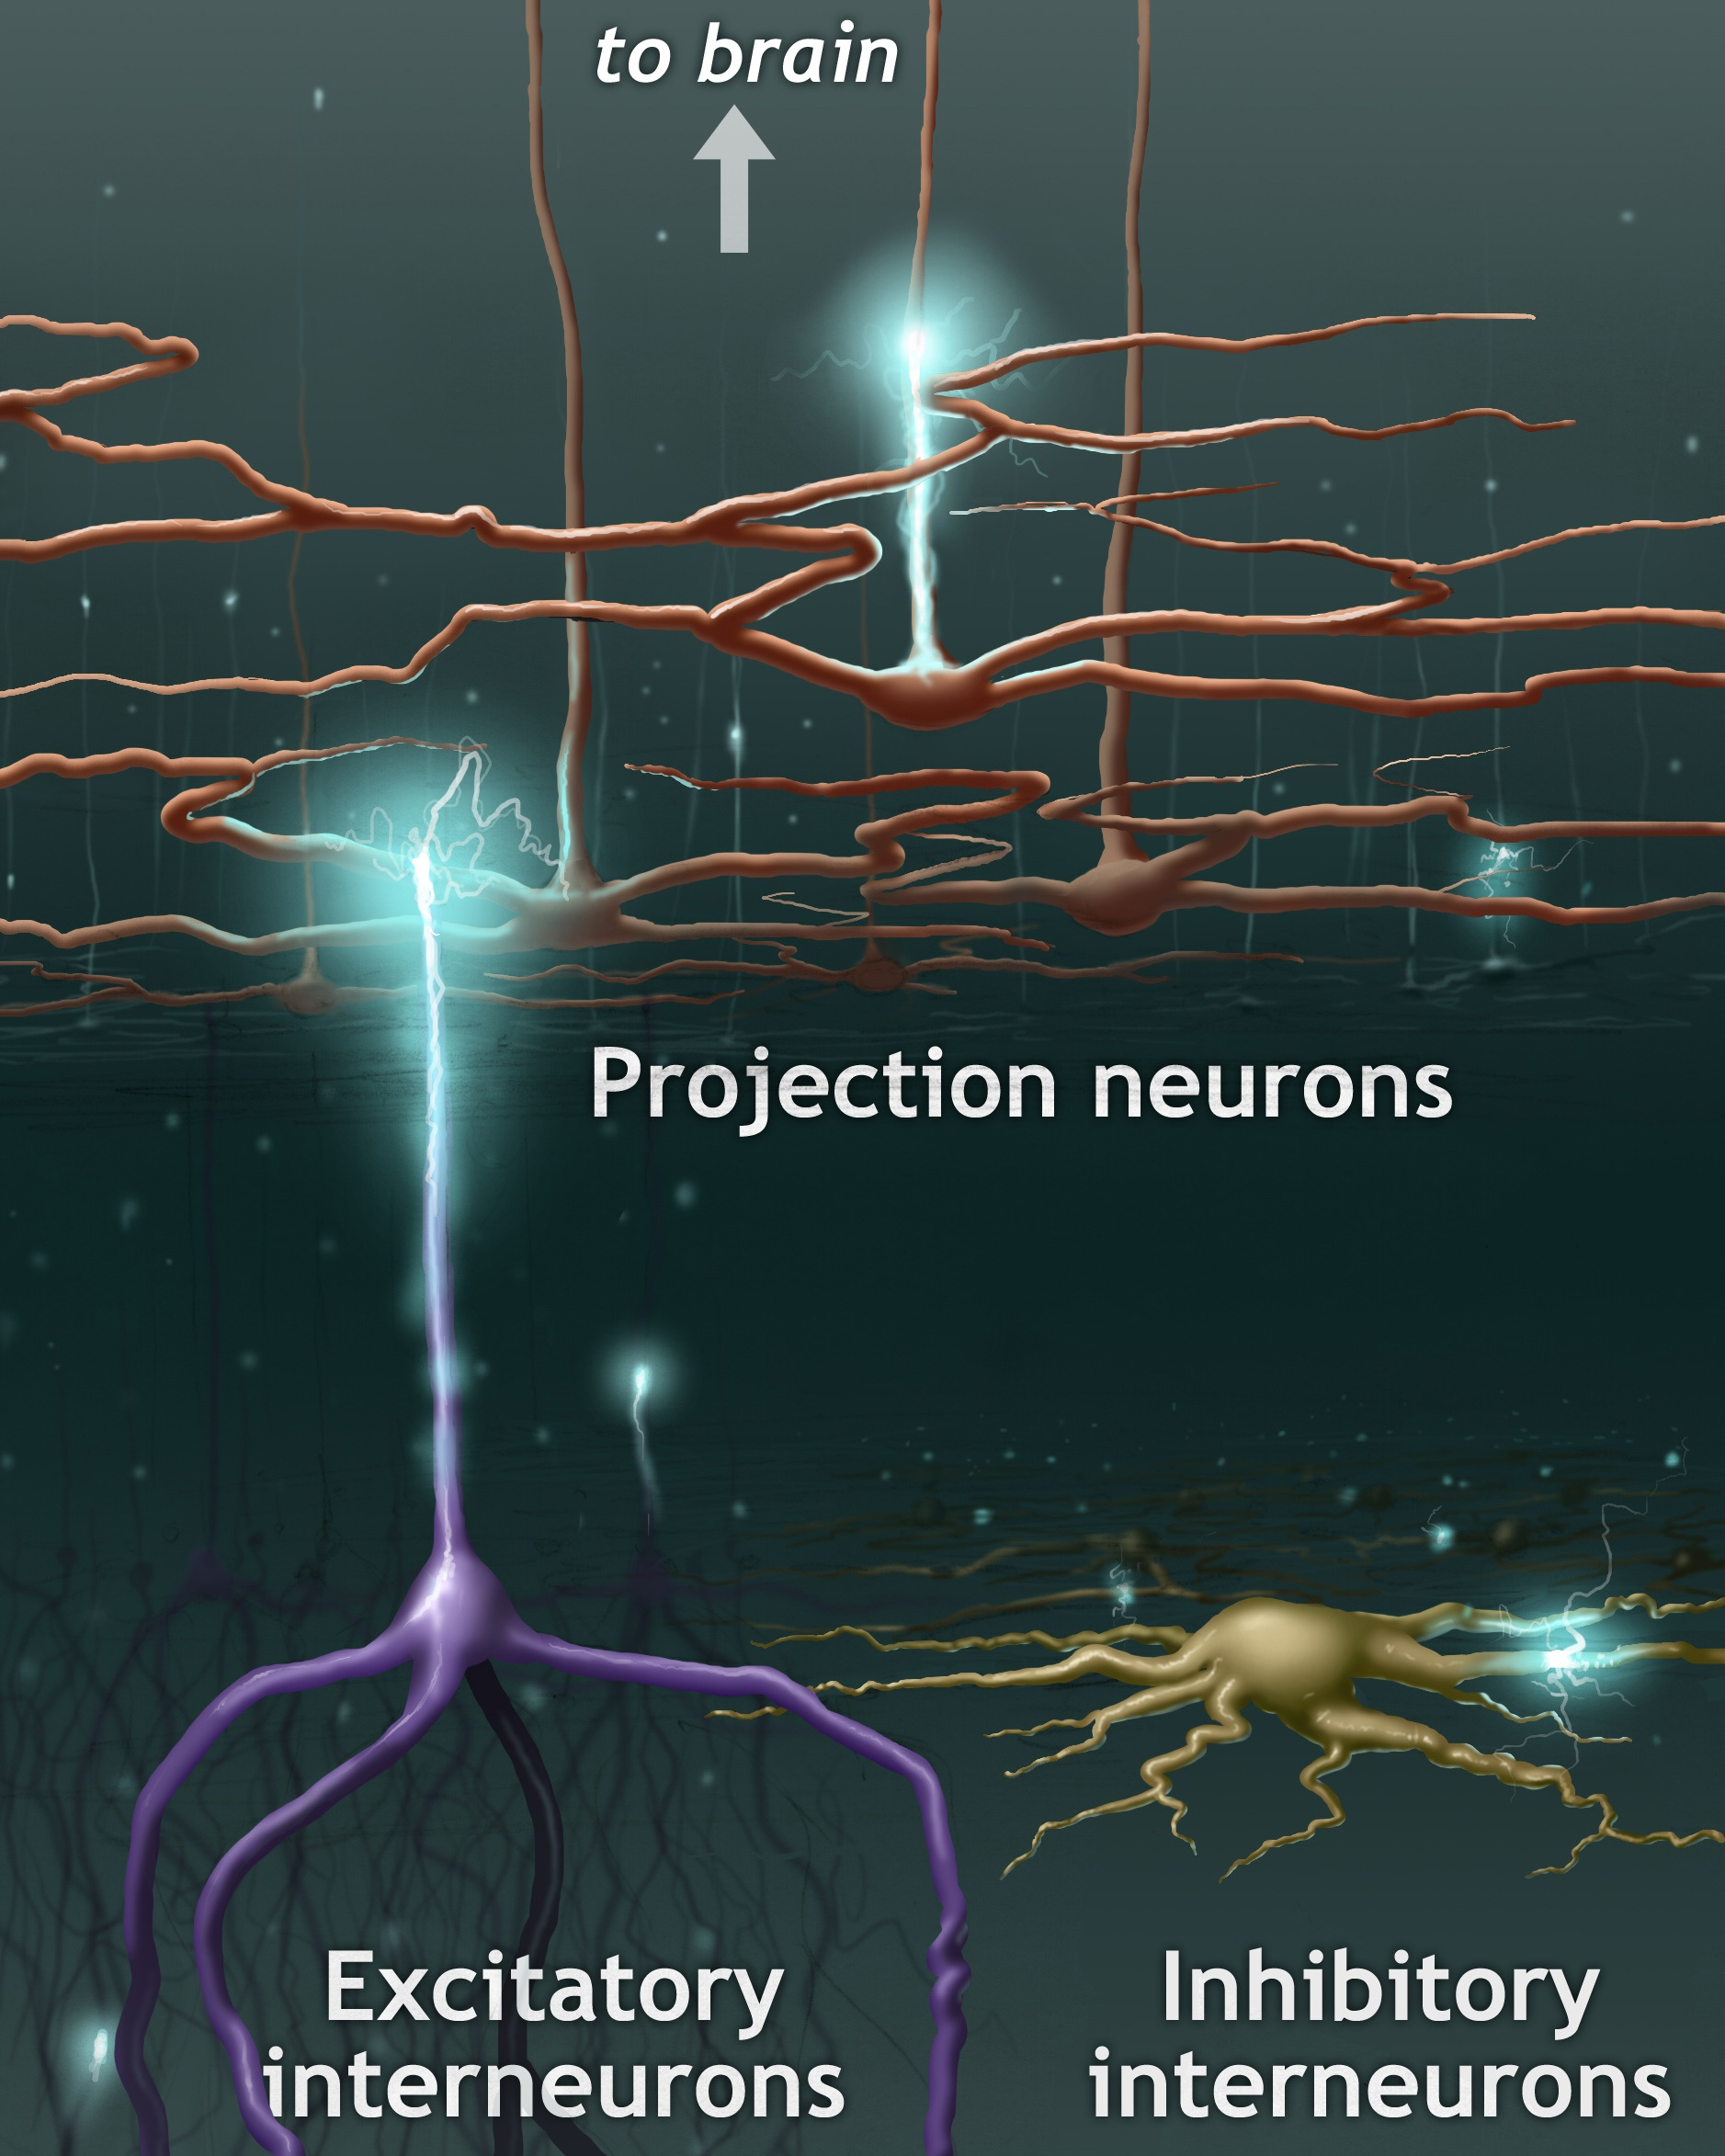 Illustration of neurons and the brain